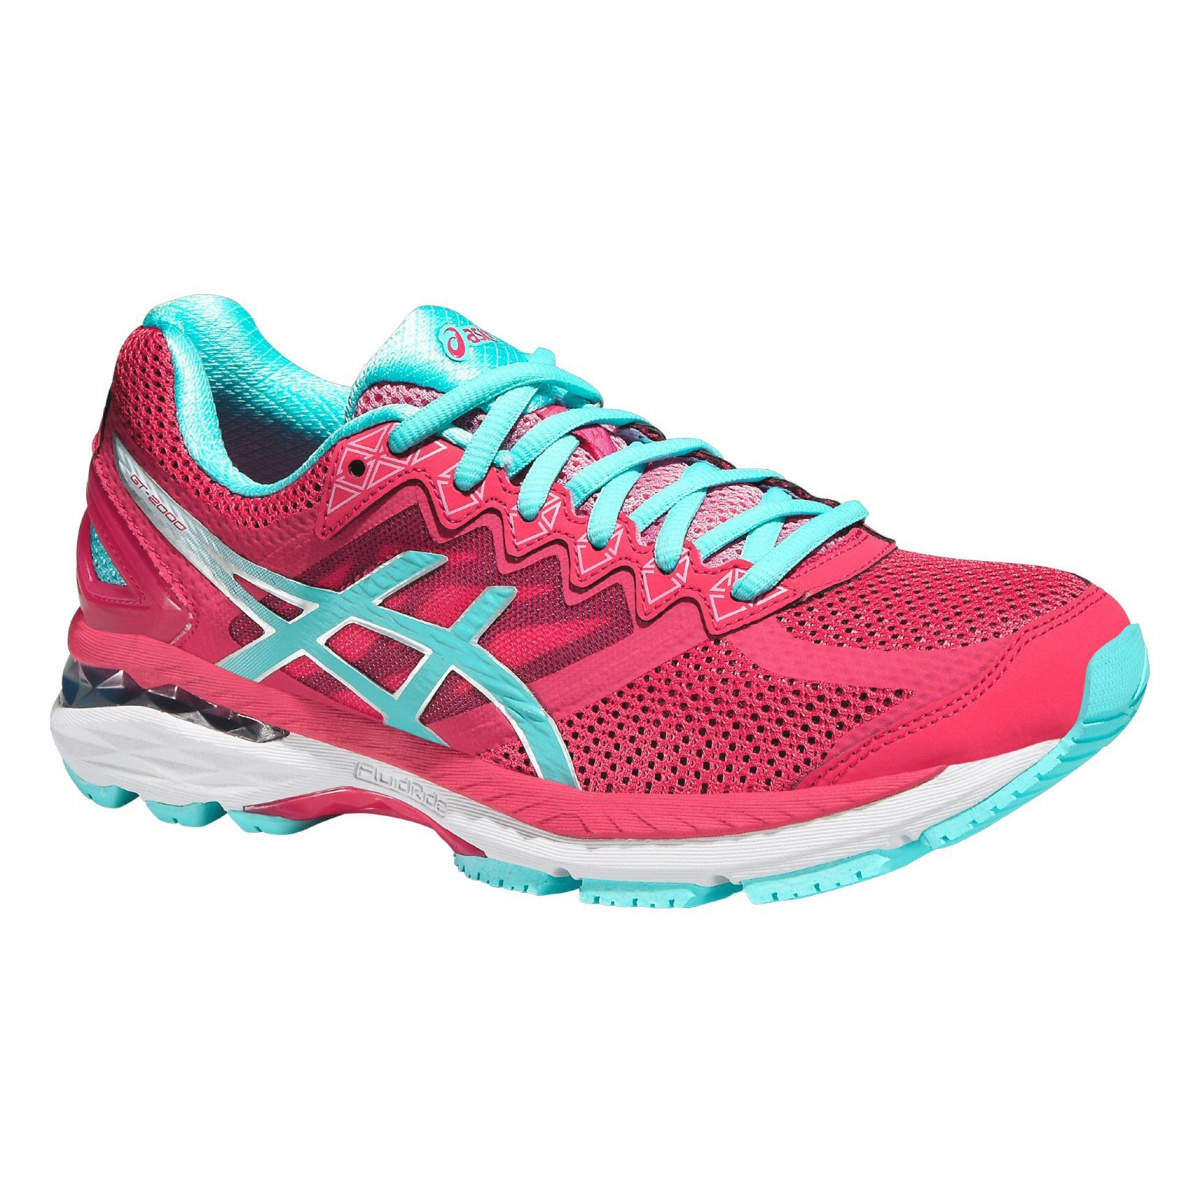 Asics Womens Running Shoes Online